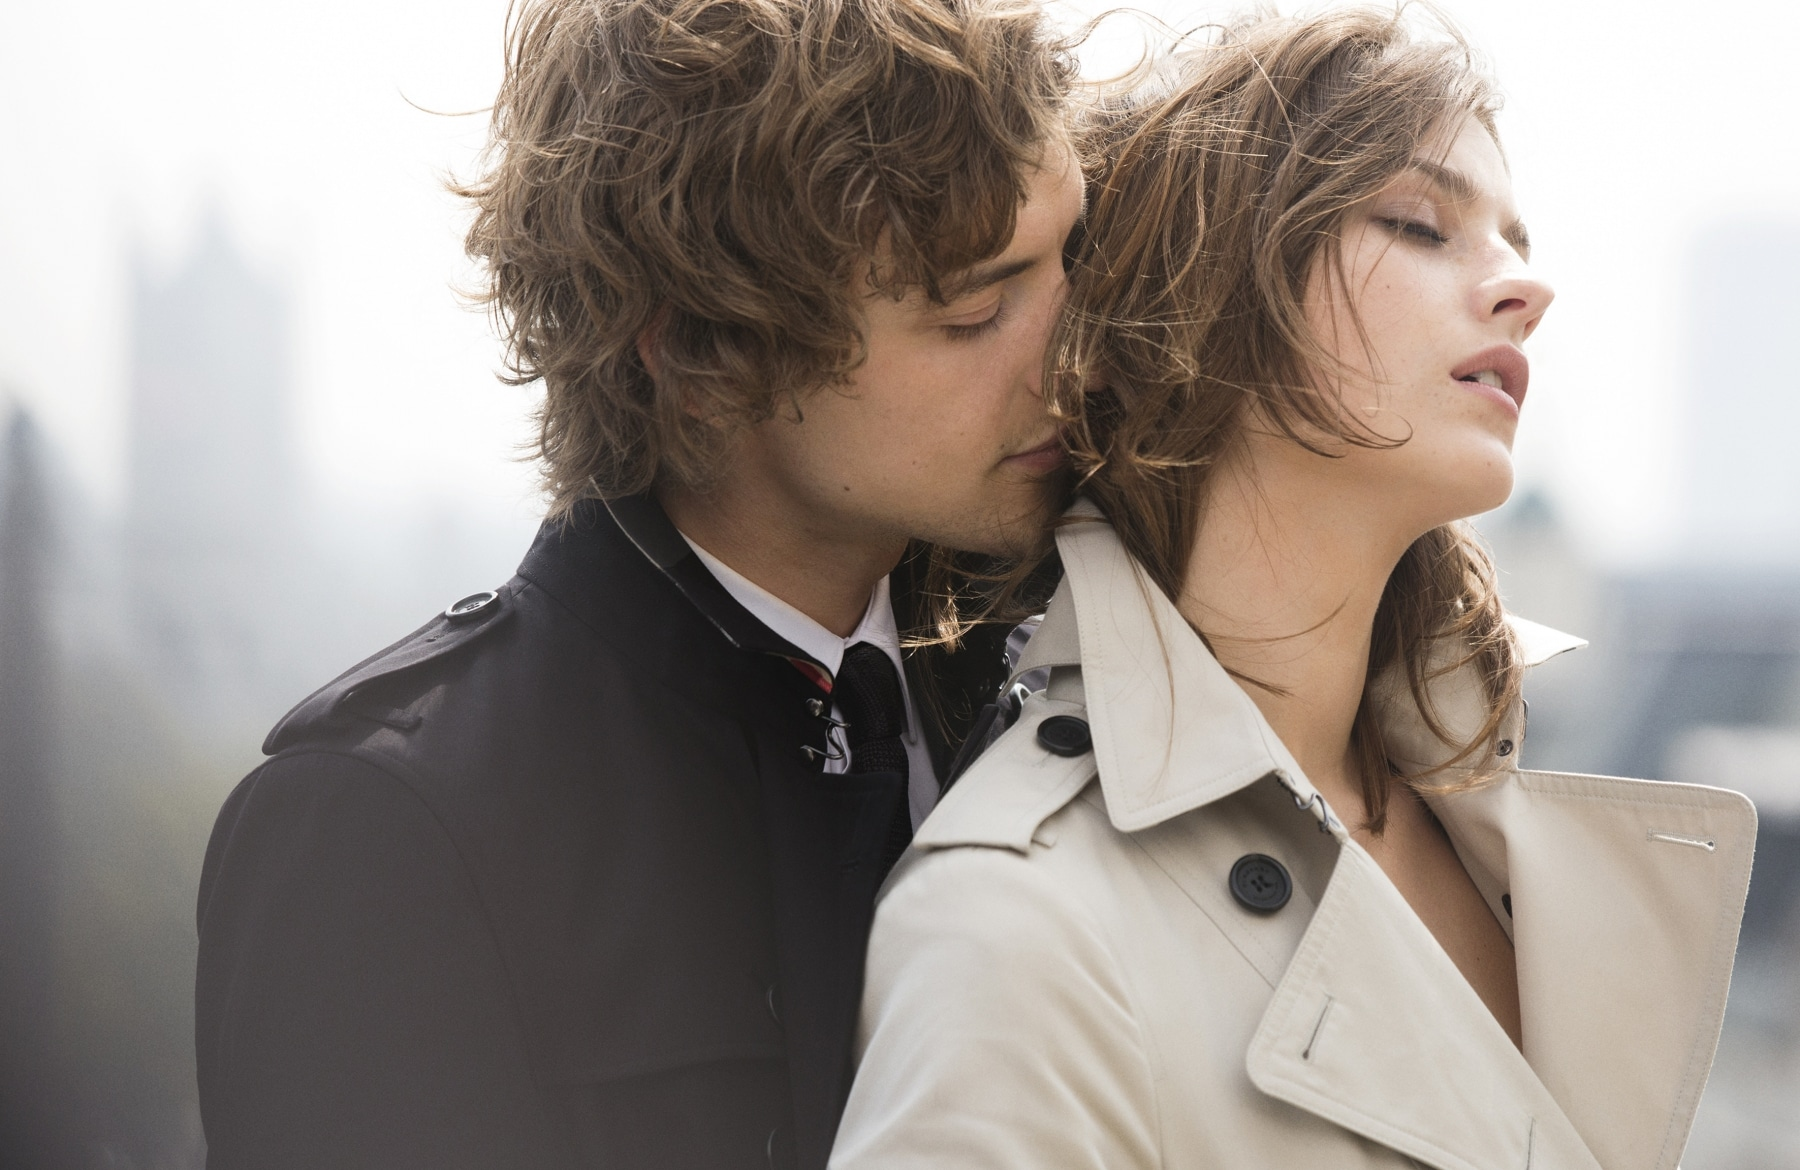 mr burberry fragrance perfect romance